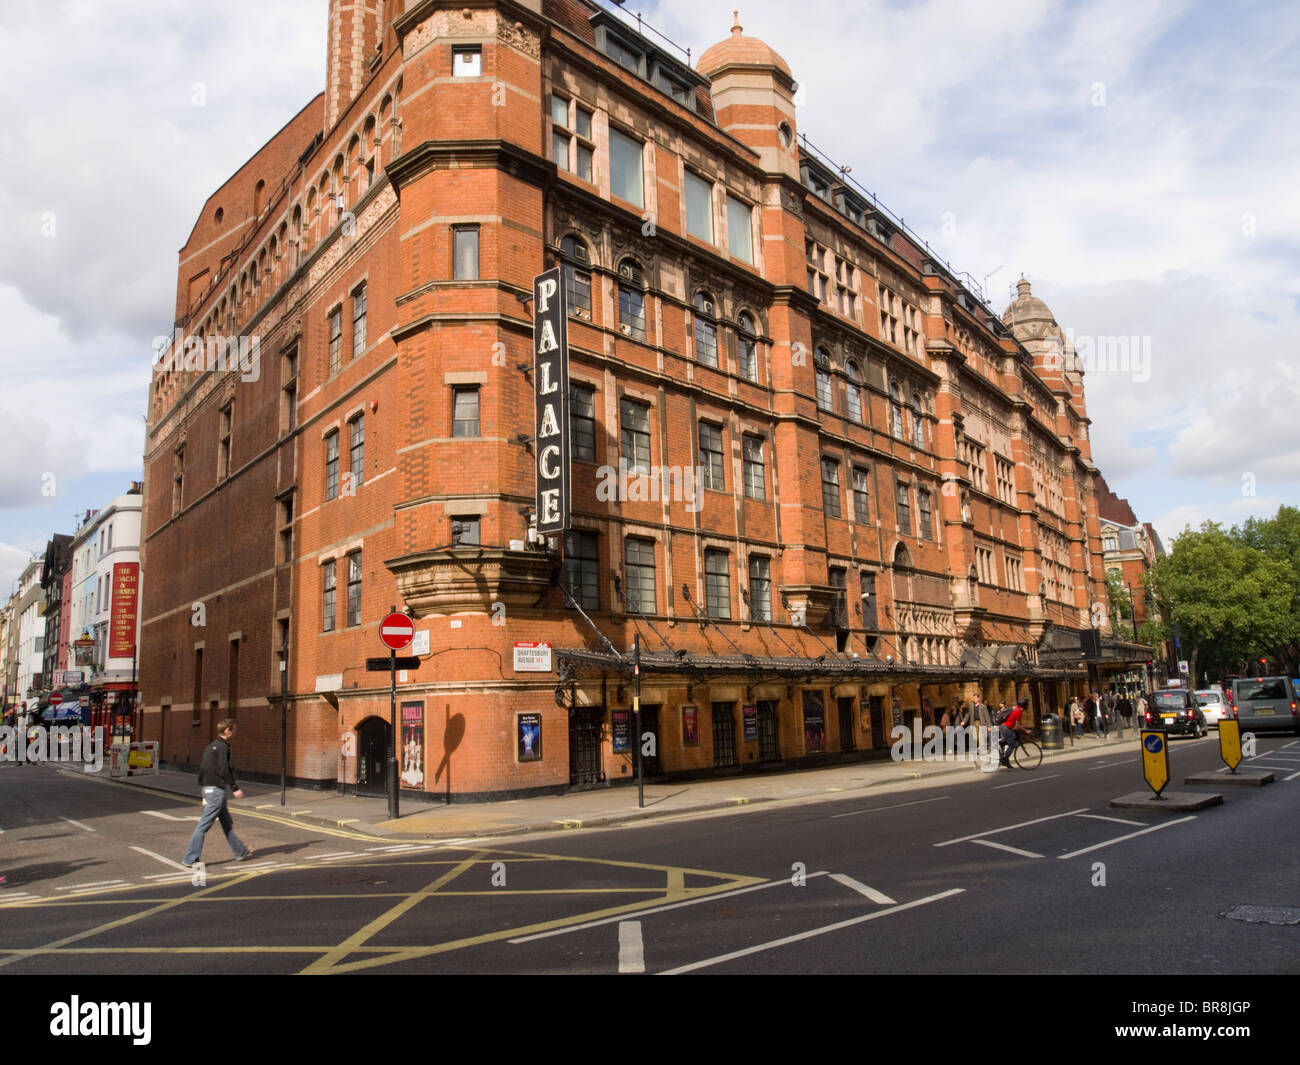 The Palace Theatre, Shaftesbury Avenue, West End, London, England, UK - Stock Image